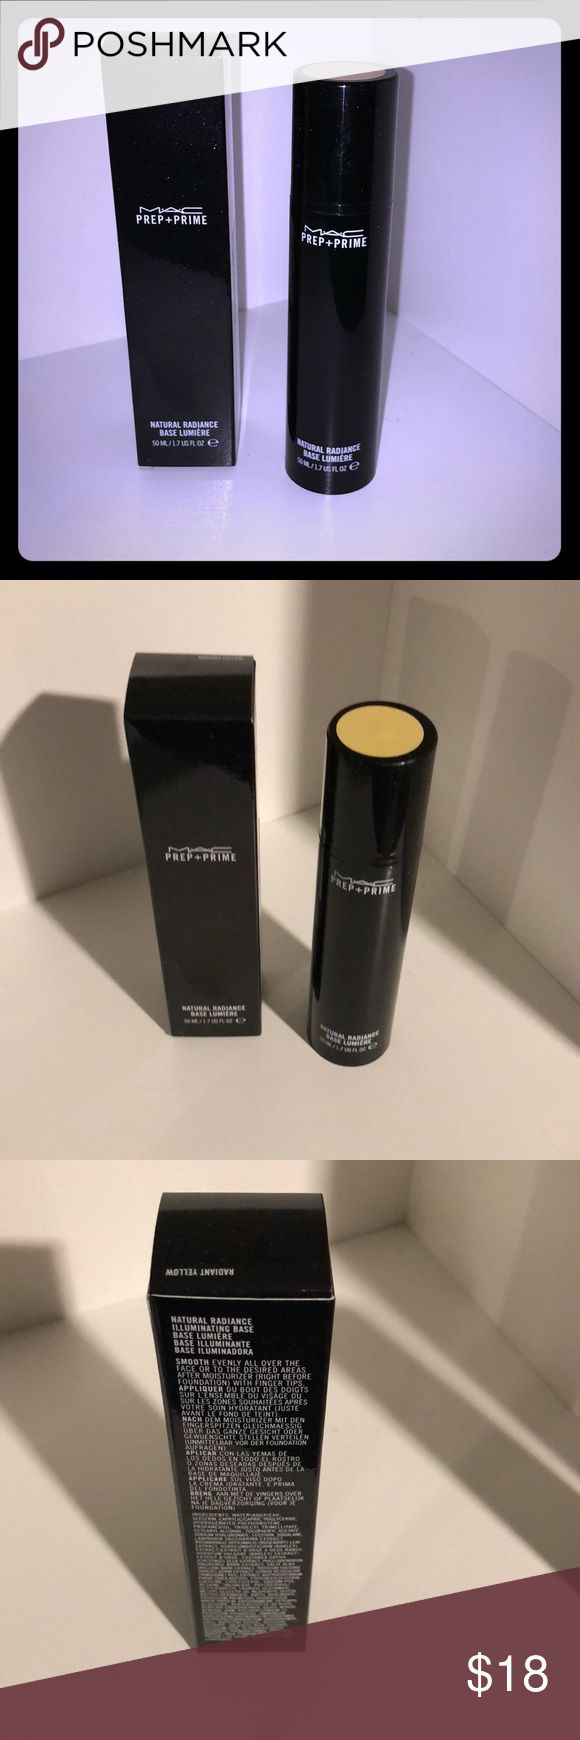 MAC Cosmetics Natural Radiance Primer Authentic MAC Cosmetics natural radiance primer in color radiant yellow. Brand new, in box. *price is firm* MAC Cosmetics Makeup